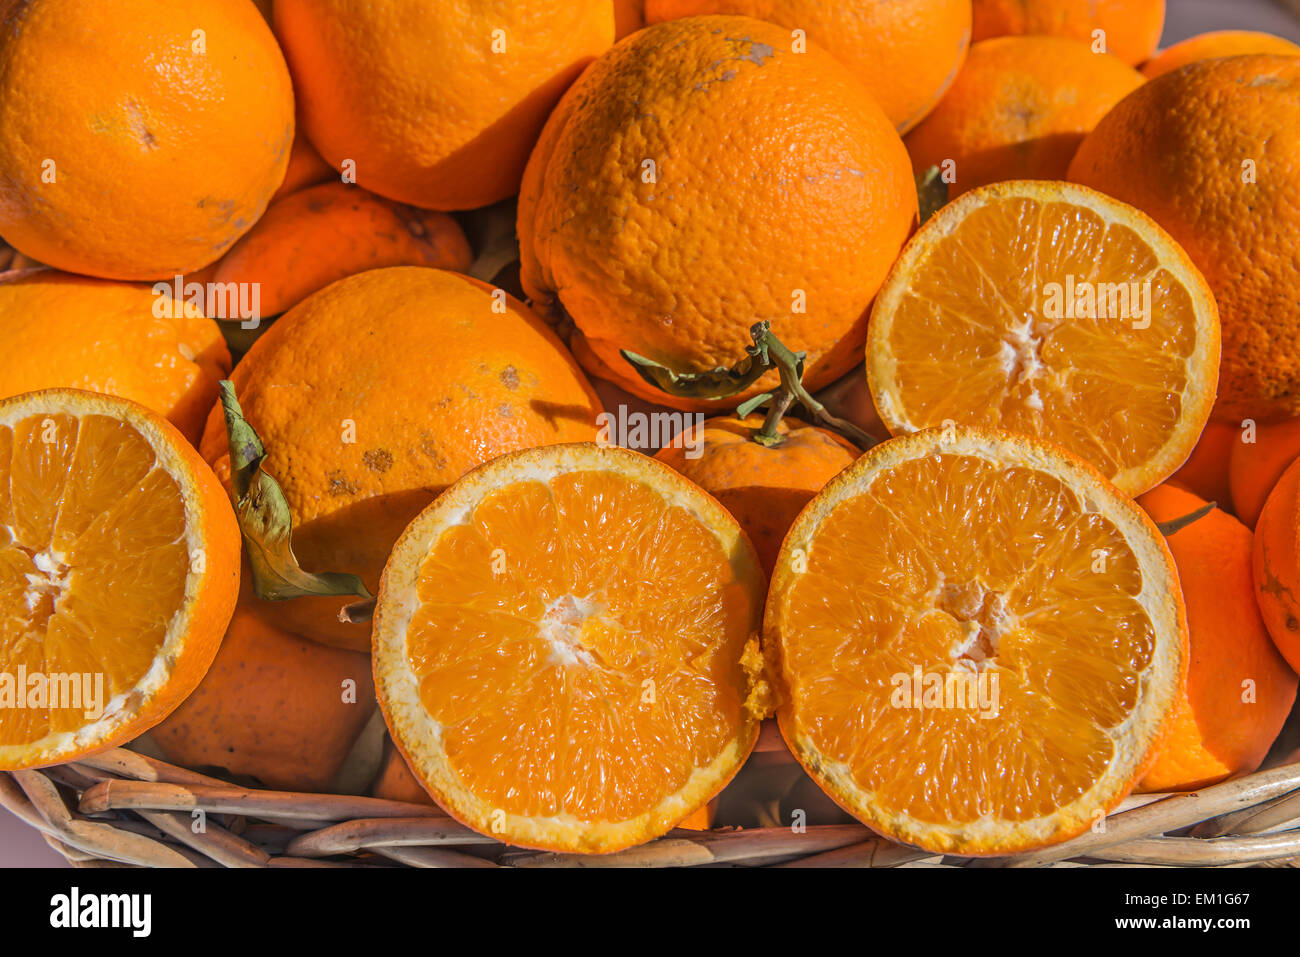 Fresh local oranges on display with two cut through displaying the juicy cross section - Stock Image